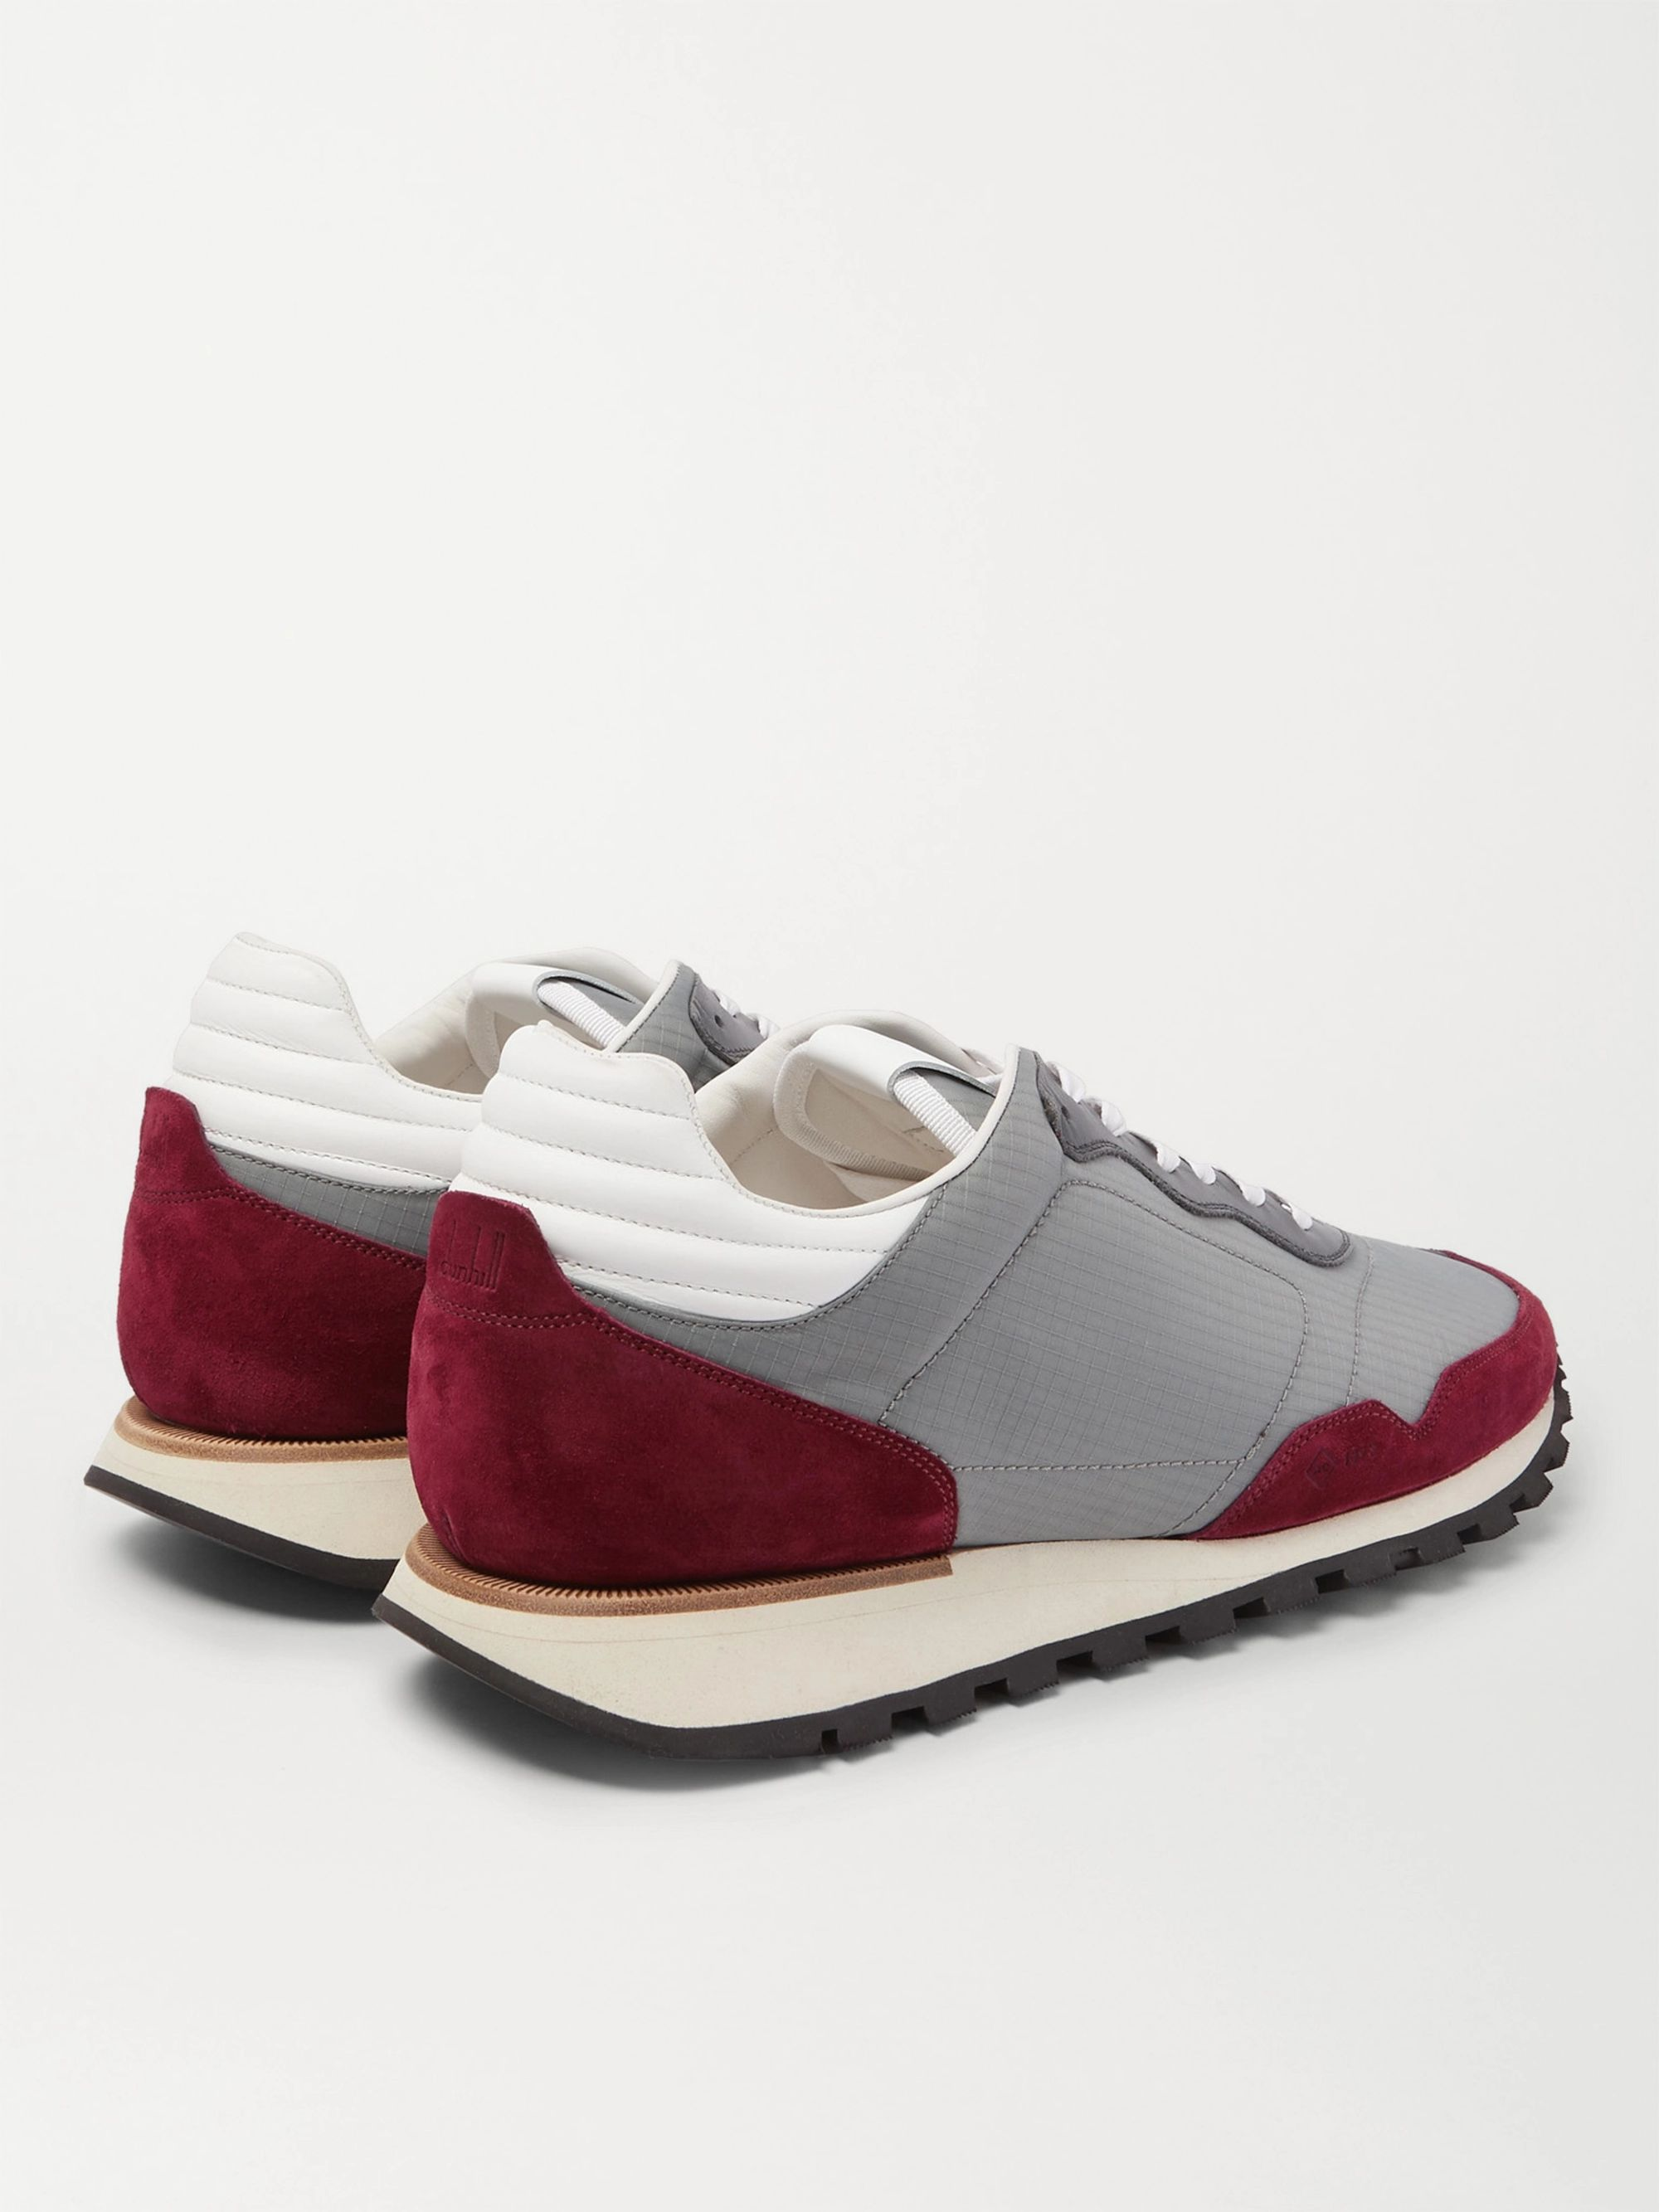 Gray Axis Ripstop, Suede And Leather Sneakers | Dunhill